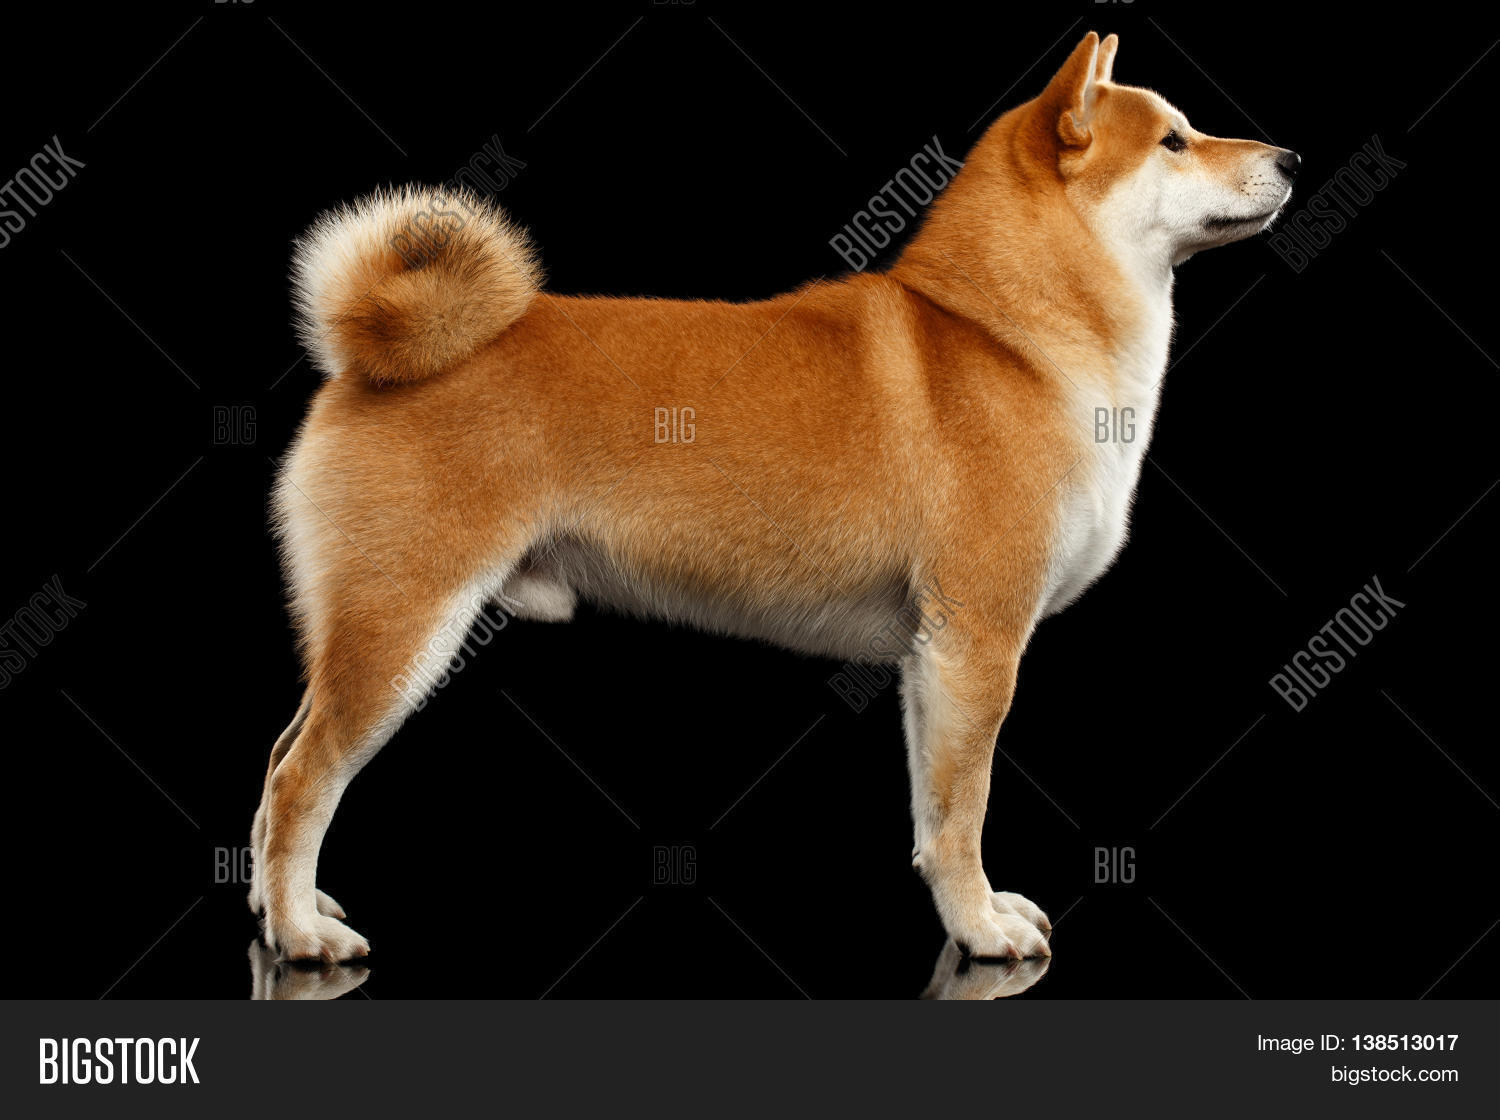 Bettwäsche Dog Side My Side Cute Pedigreed Red Shiba Inu Breed Dog Standing On